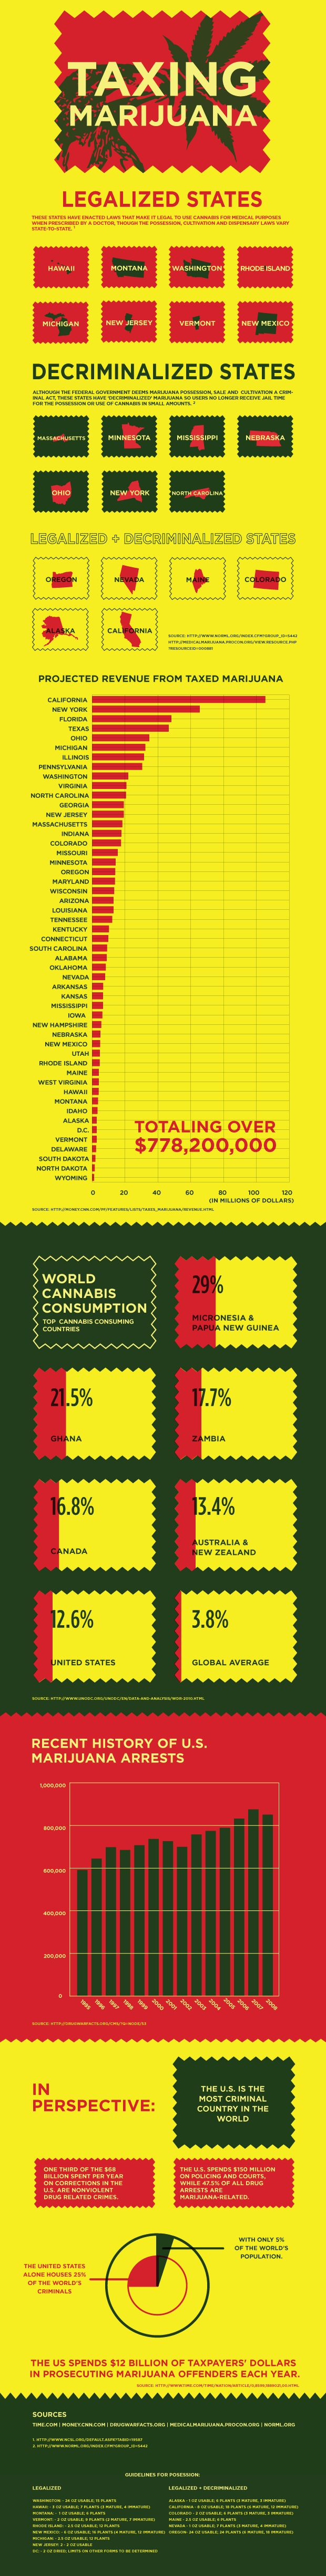 Tax Marijuana ... Again, posting this without comment. Don't know enough to agree or disagree.